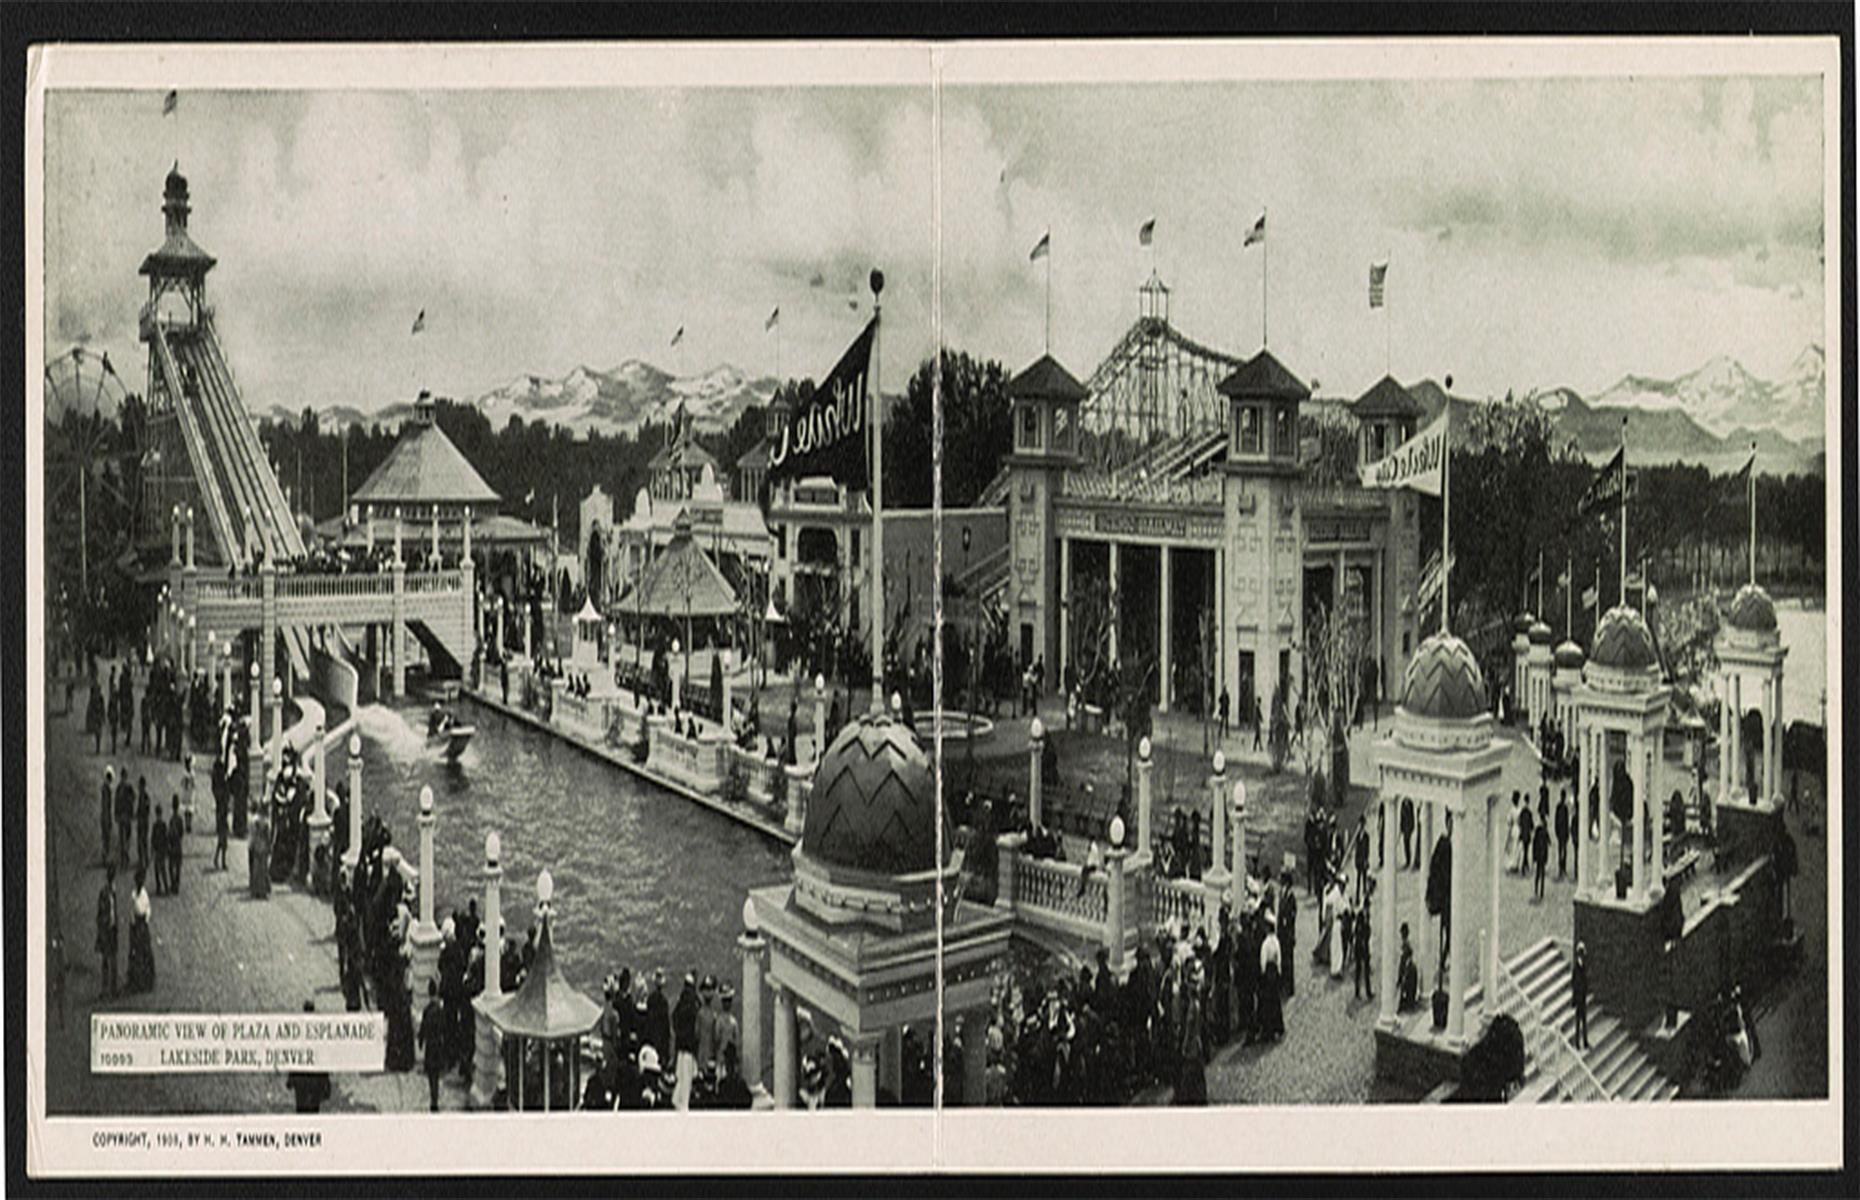 Slide 6 of 48: The 1900s was a decade that saw a surge in the popularity of amusement parks. Lakeside, a small town near Denver, has one of the country's oldest. Originally called White City, the park opened next to Lake Rhoda in 1908 to a crowd of 50,000 people. It had a swimming beach, casino, theater, racetrack and public pool as well as traditional fairground rides. Lakeside Amusement Park is still in operation today. Discover US theme parks that didn't go the distance and are now abandoned here.